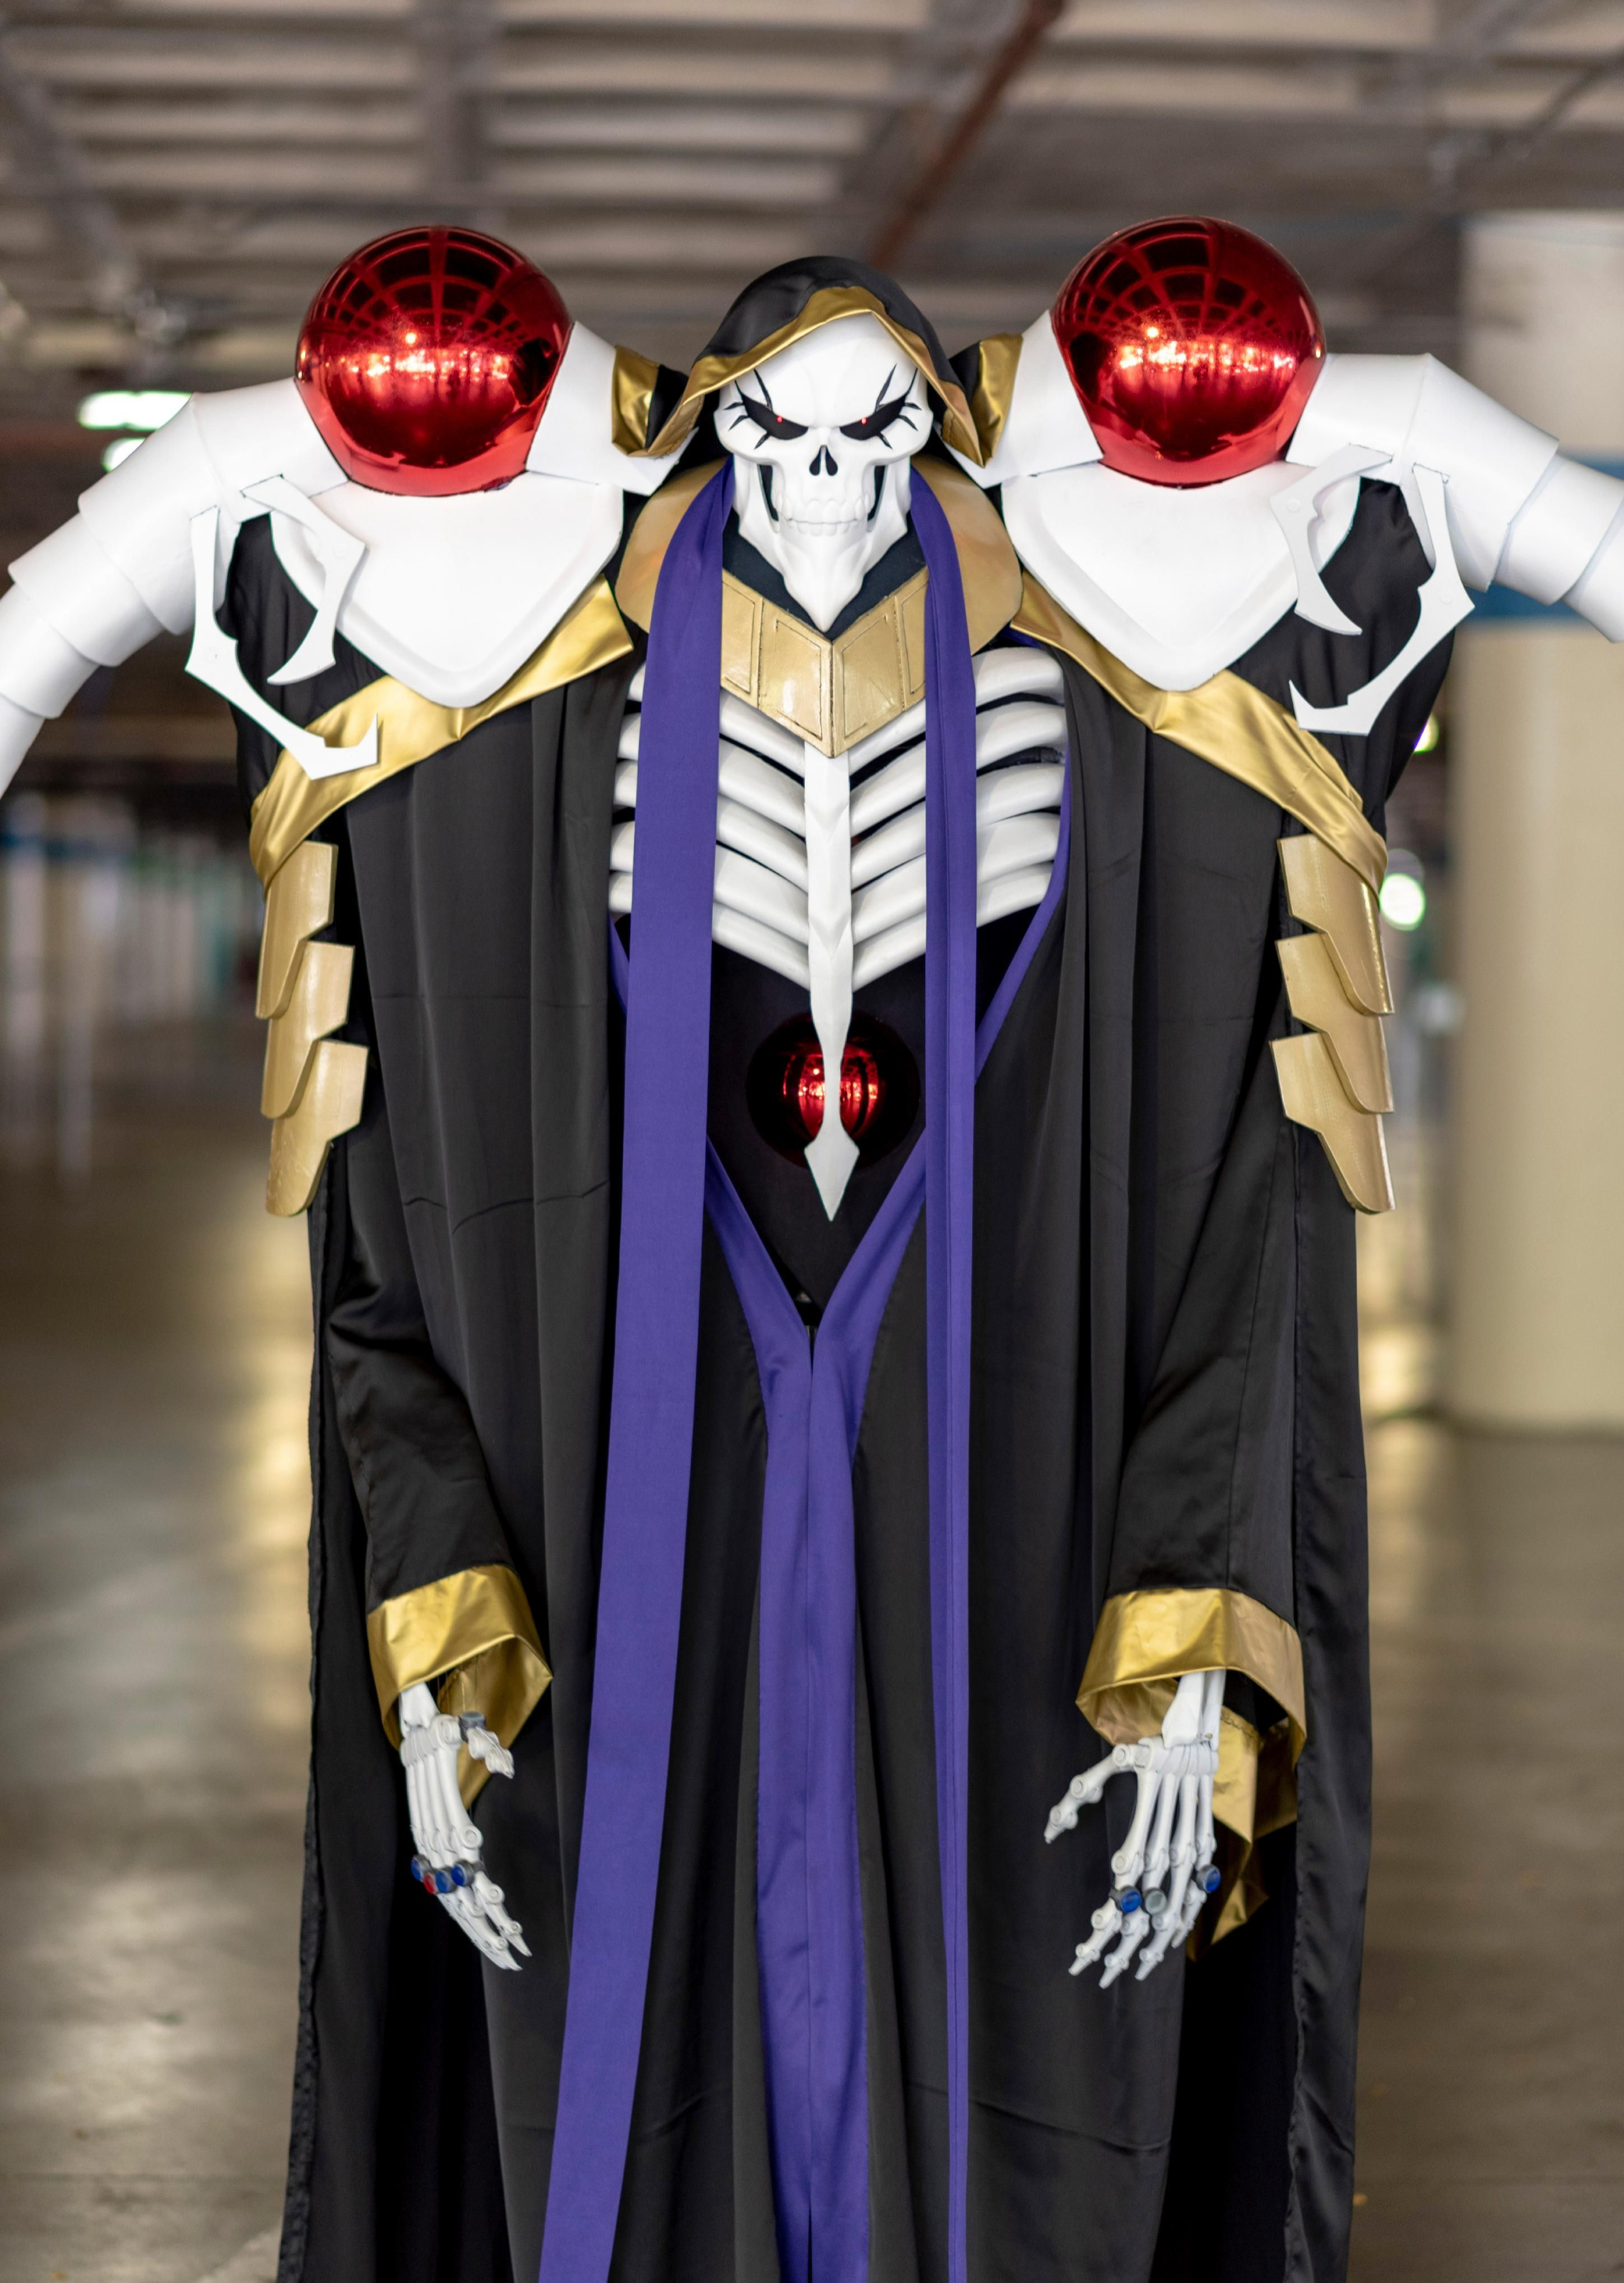 Self My Ainz Ooal Gown Cosplay From The Anime Overlord That I